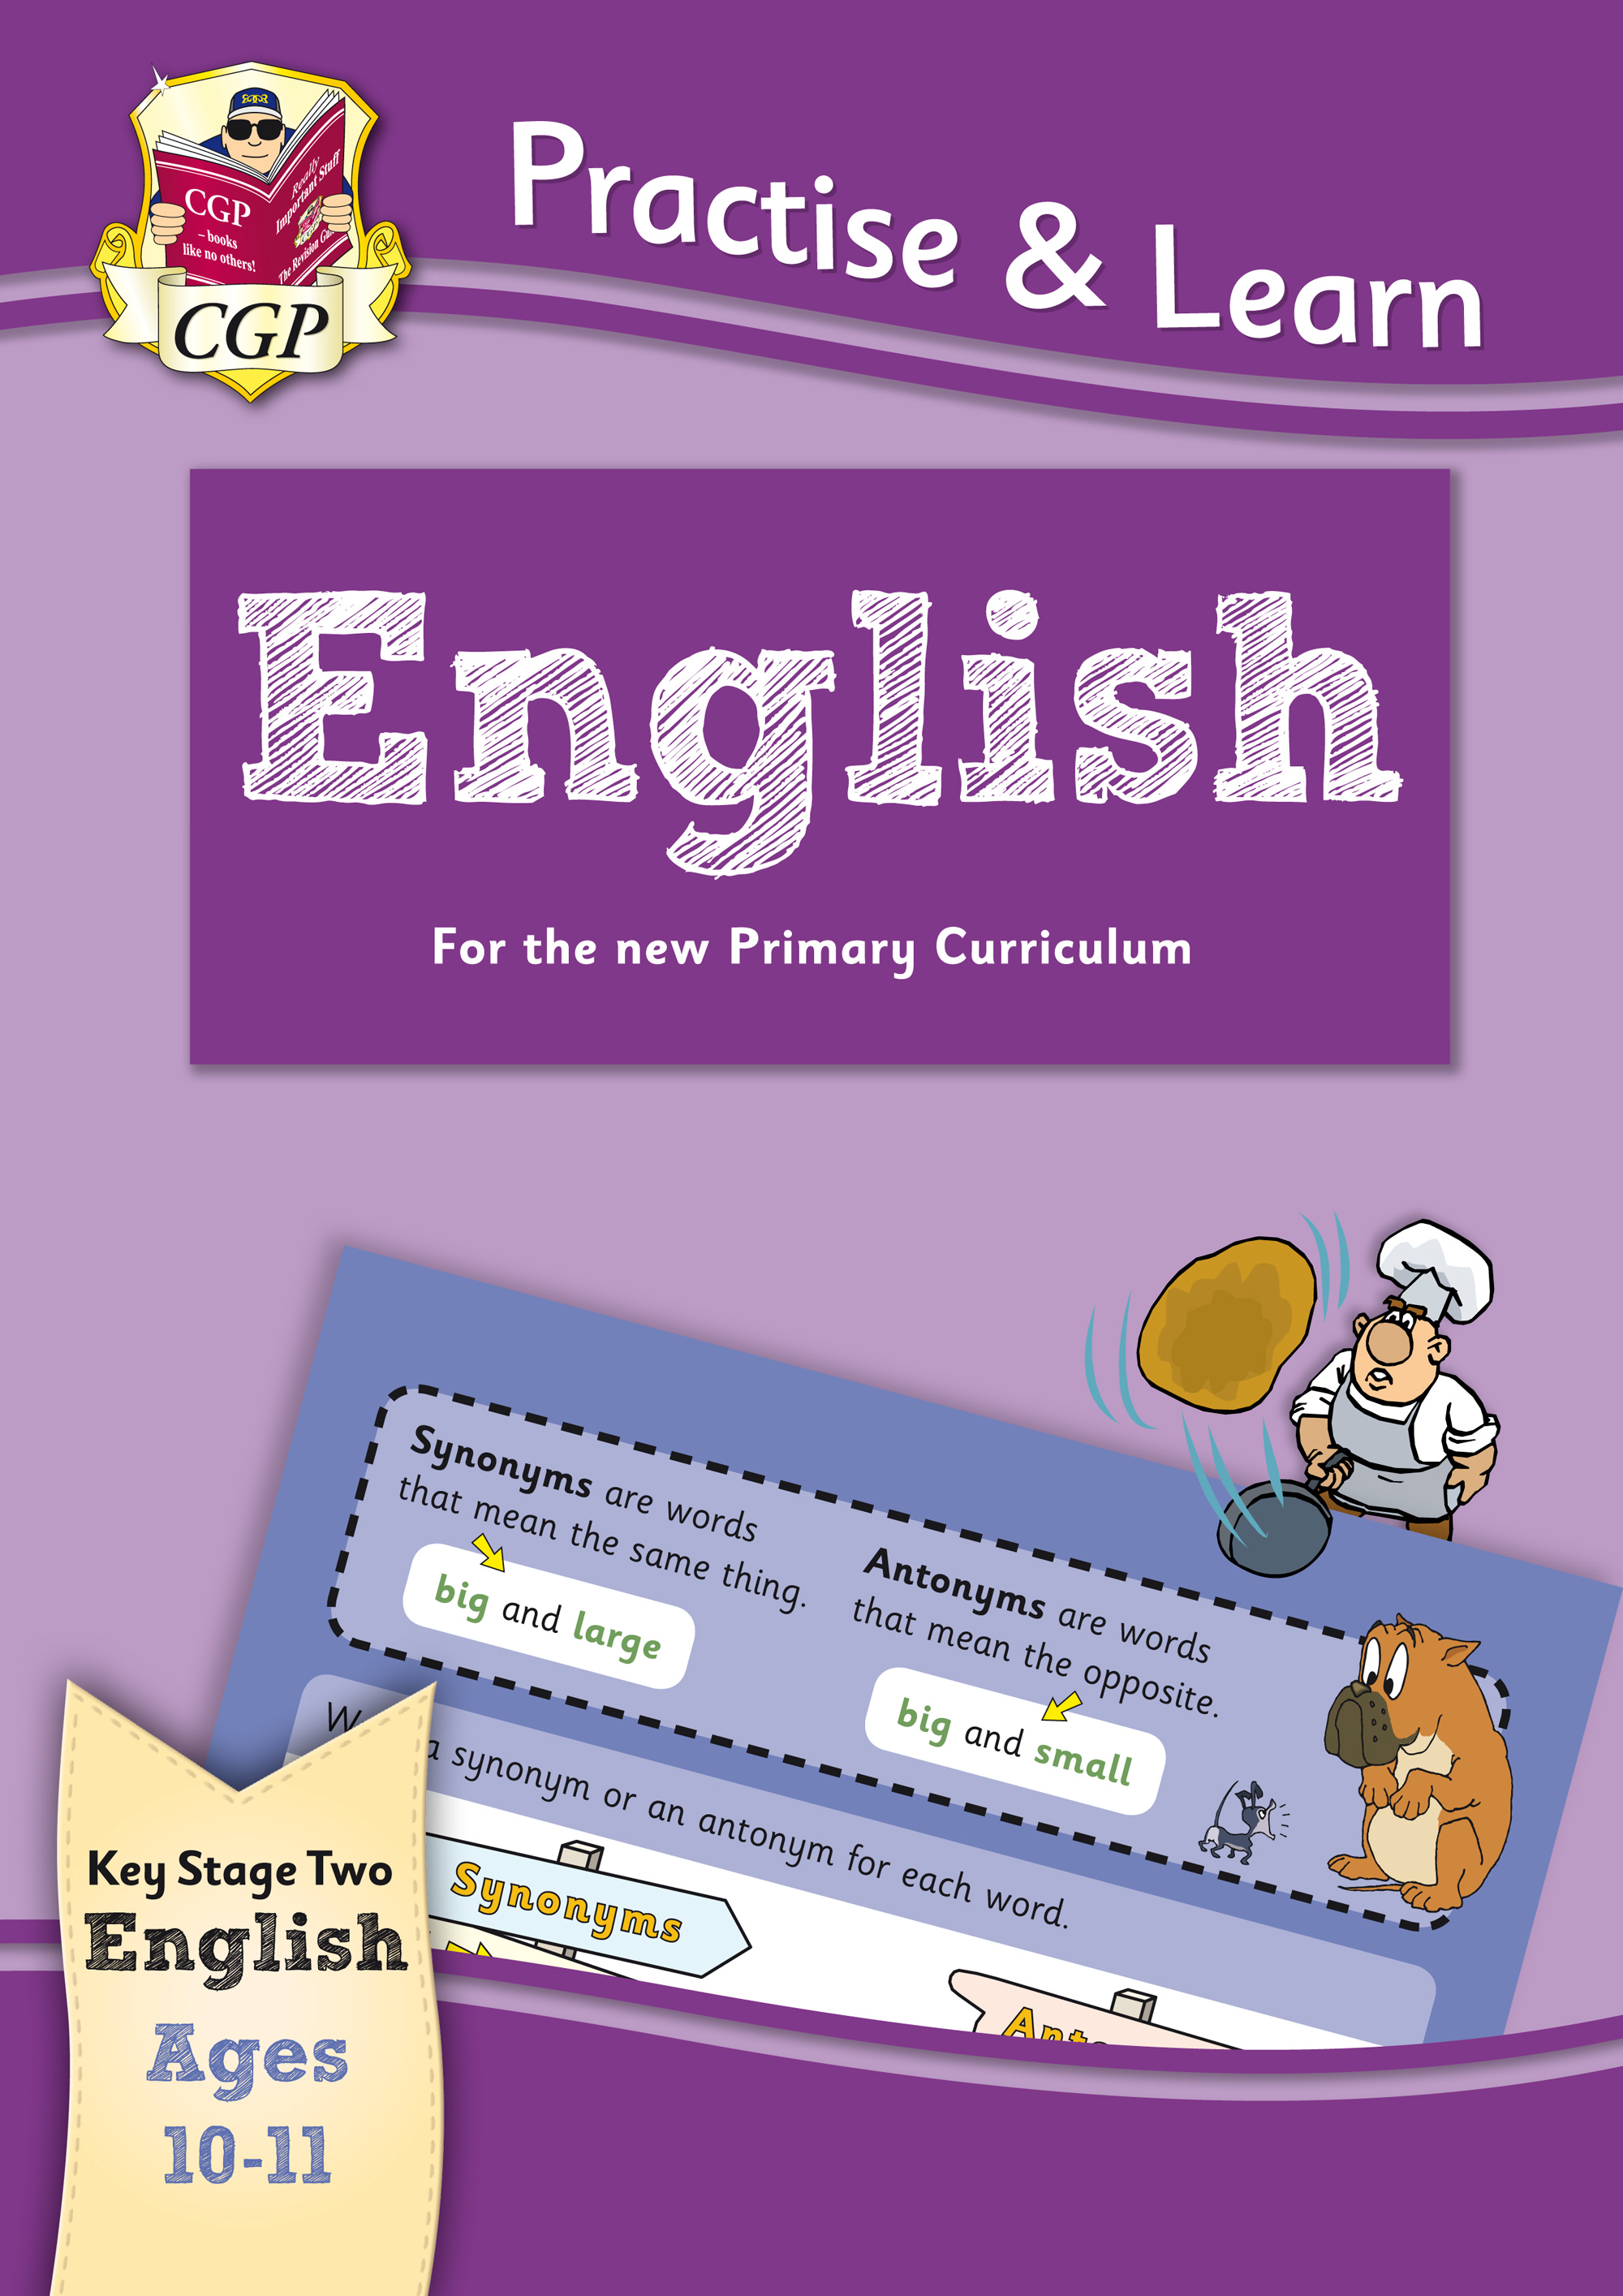 EP6Q22 - New Curriculum Practise & Learn: English for Ages 10-11.